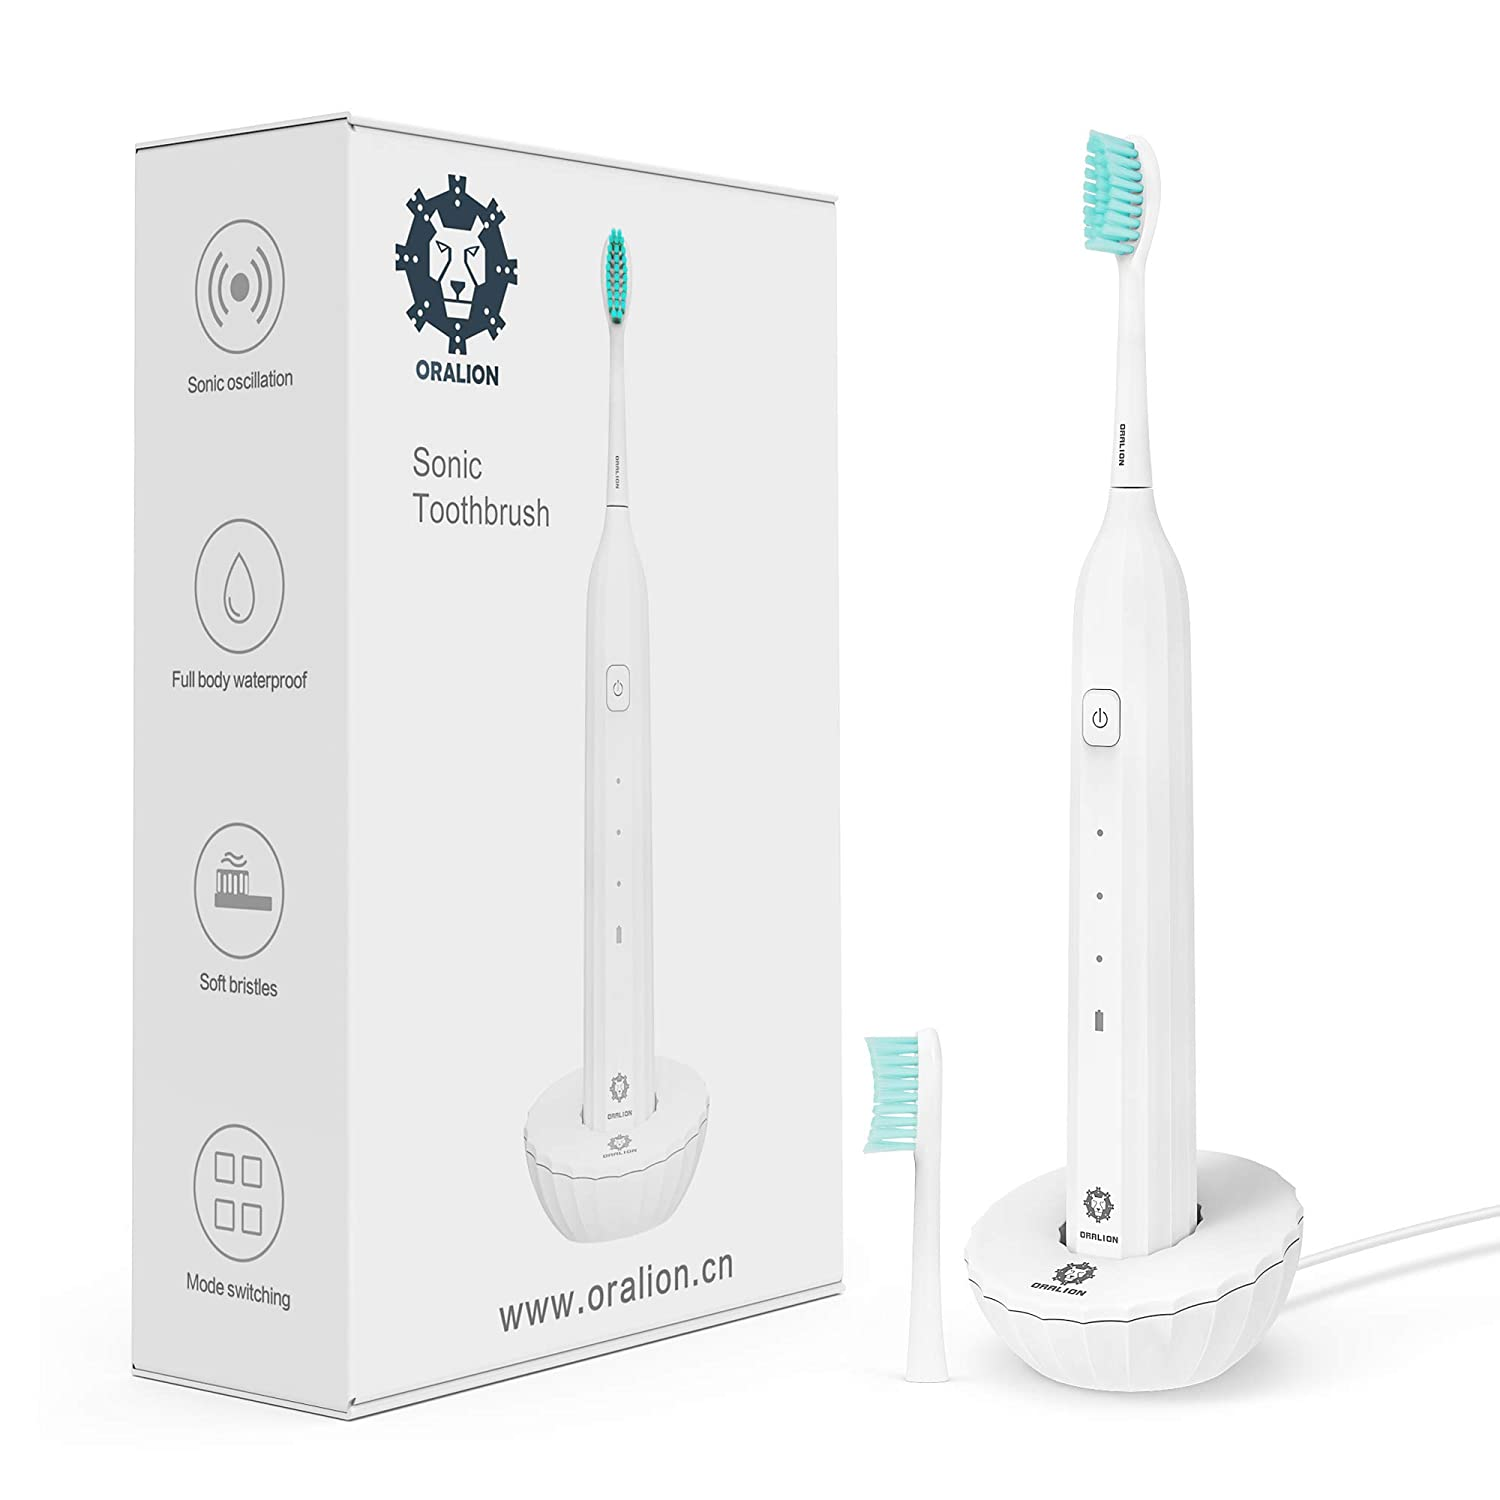 Electric Sonic Toothbrush Clean for Adults, USB Rechargeable Powered Toothbrush Built-in Smart Timer, 3 Deep Cleaning Modes, 2 Replacement Brush Heads, IPX7 Waterproof, Dentists Recommend, White